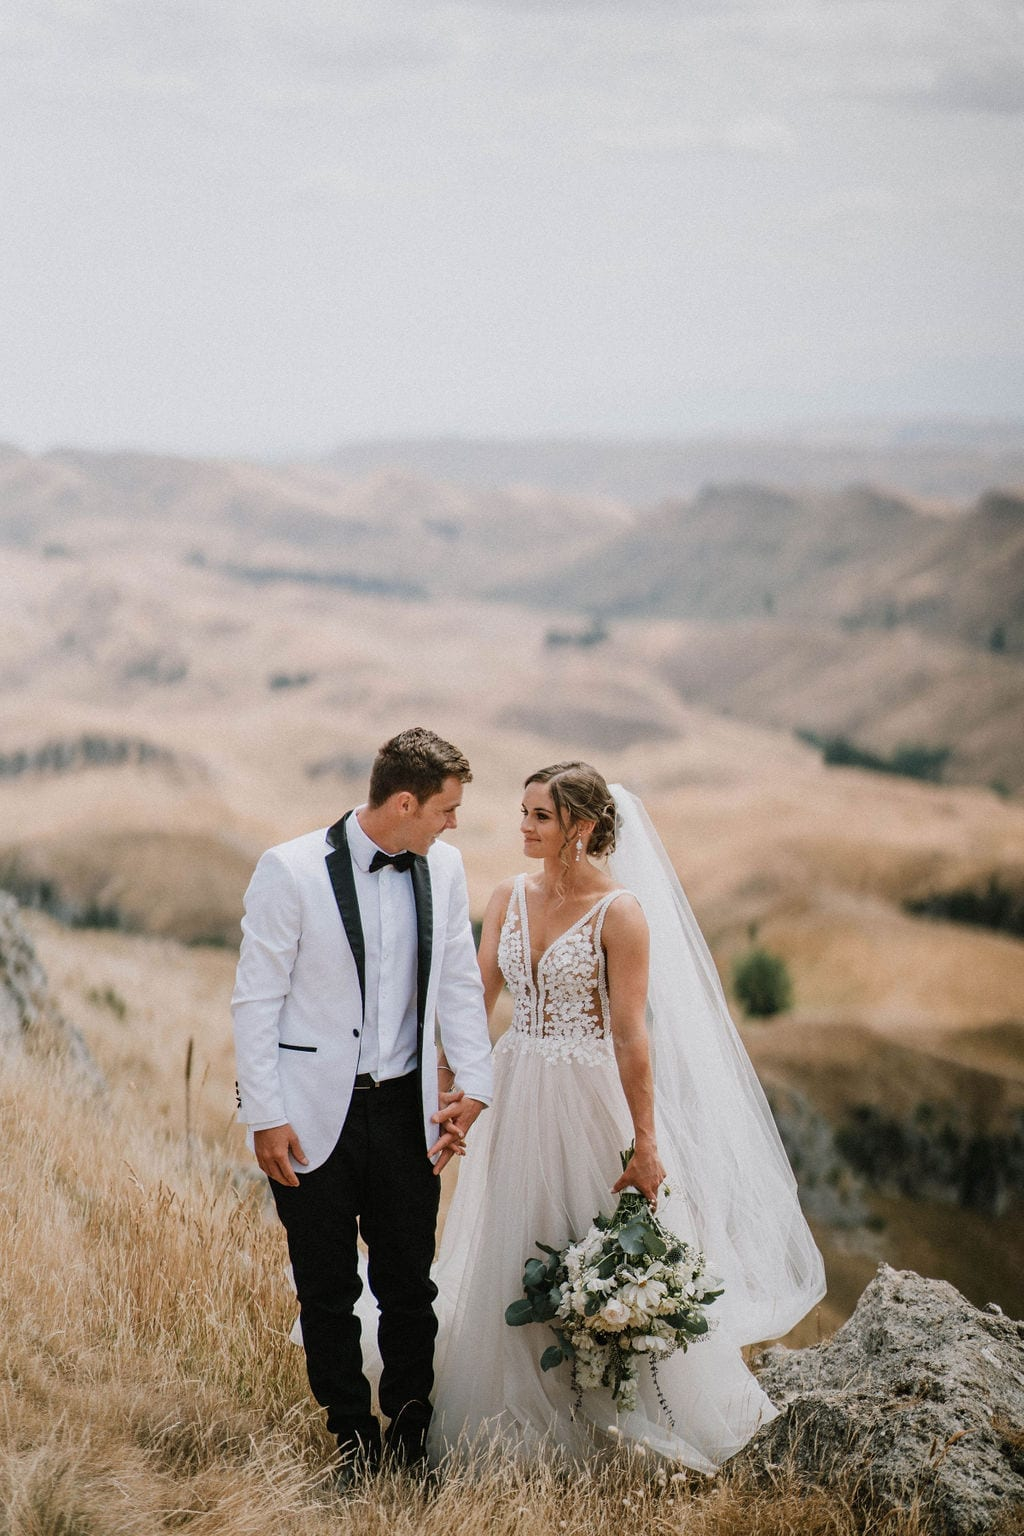 Vinka Design Features Real Weddings - bride in custom version of the Isabelle gown from our Heart of Havana collection. A fitted nude based bodice with delicate 3D beaded flowers with hand beaded trim and a skirt of dreamy tulle. Bride and groom walk hand in hand up hill - with breathtaking backdrop nz